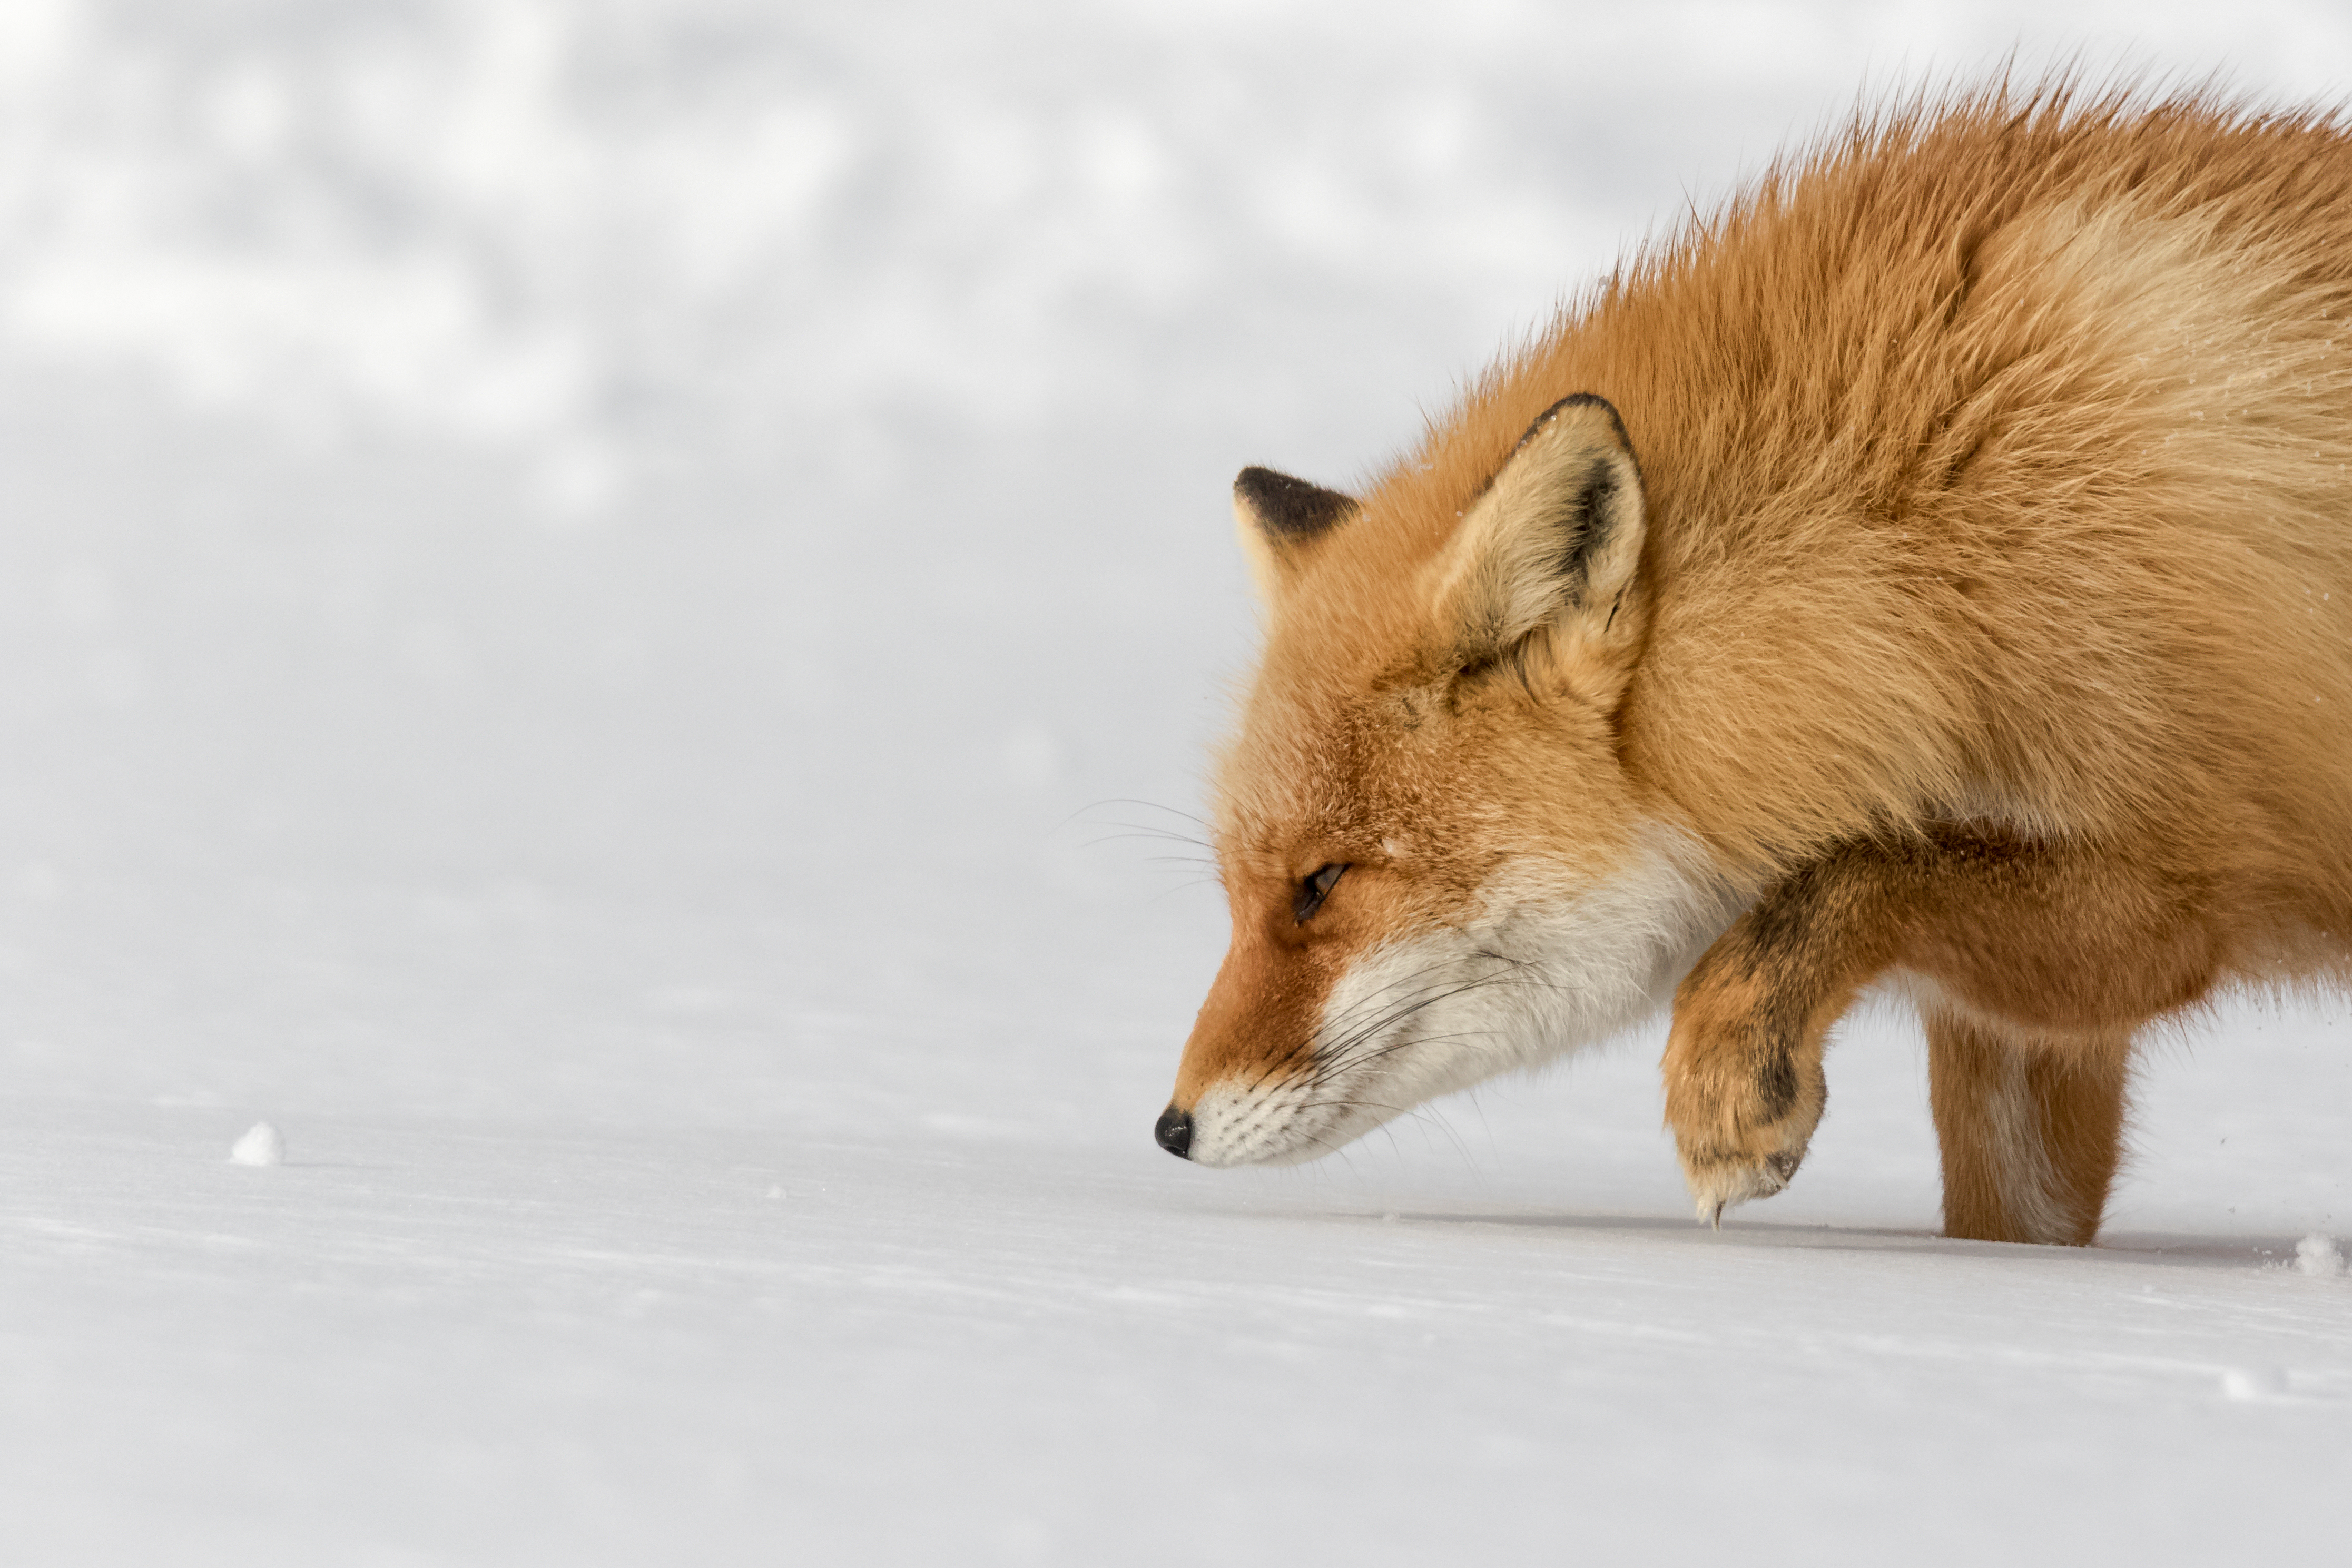 A fox stalking in the snow